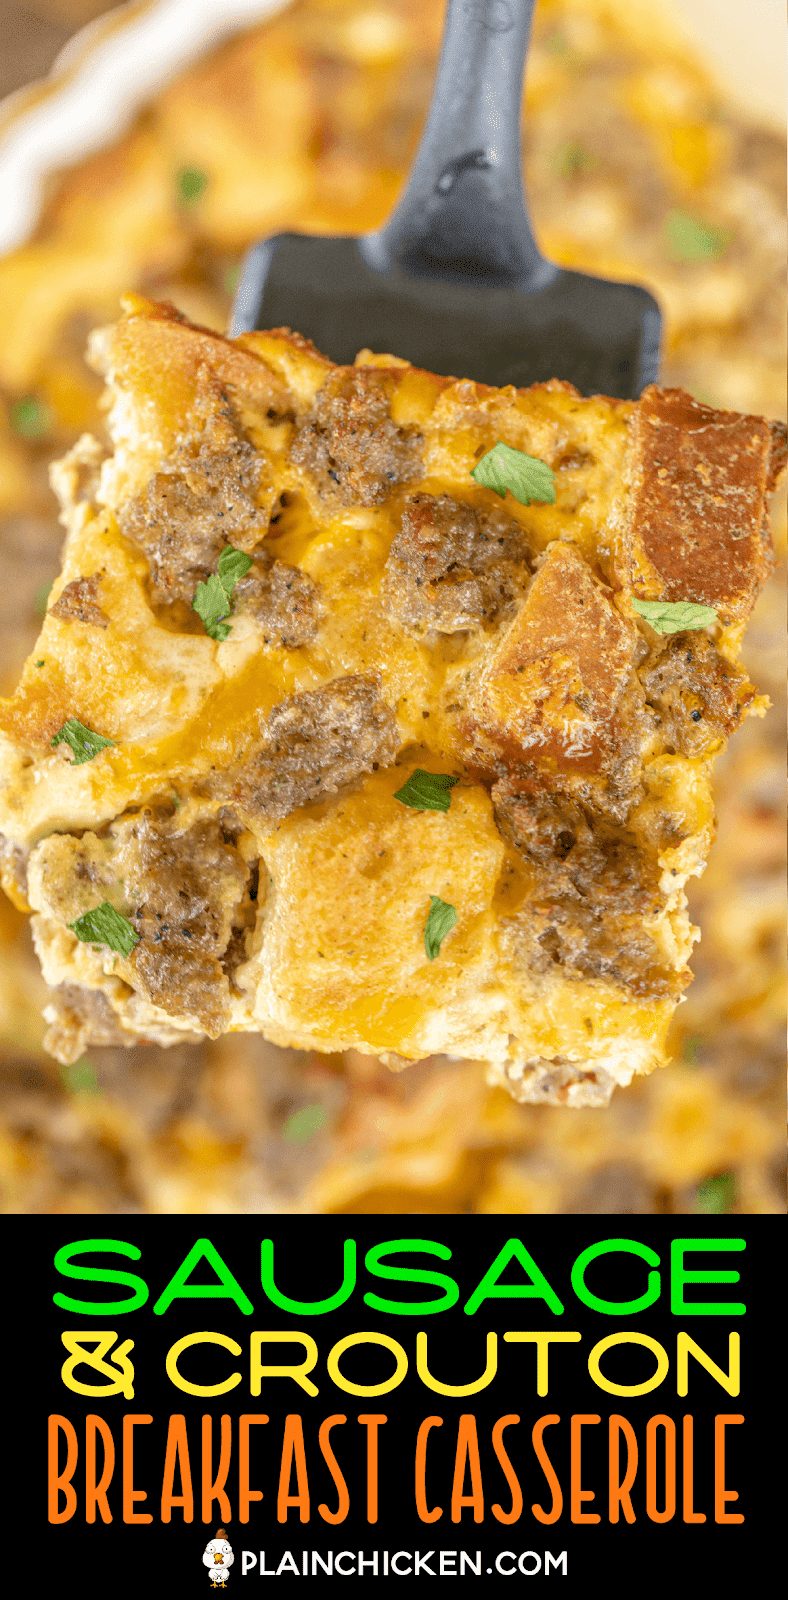 slice of sausage breakfast casserole on spatula